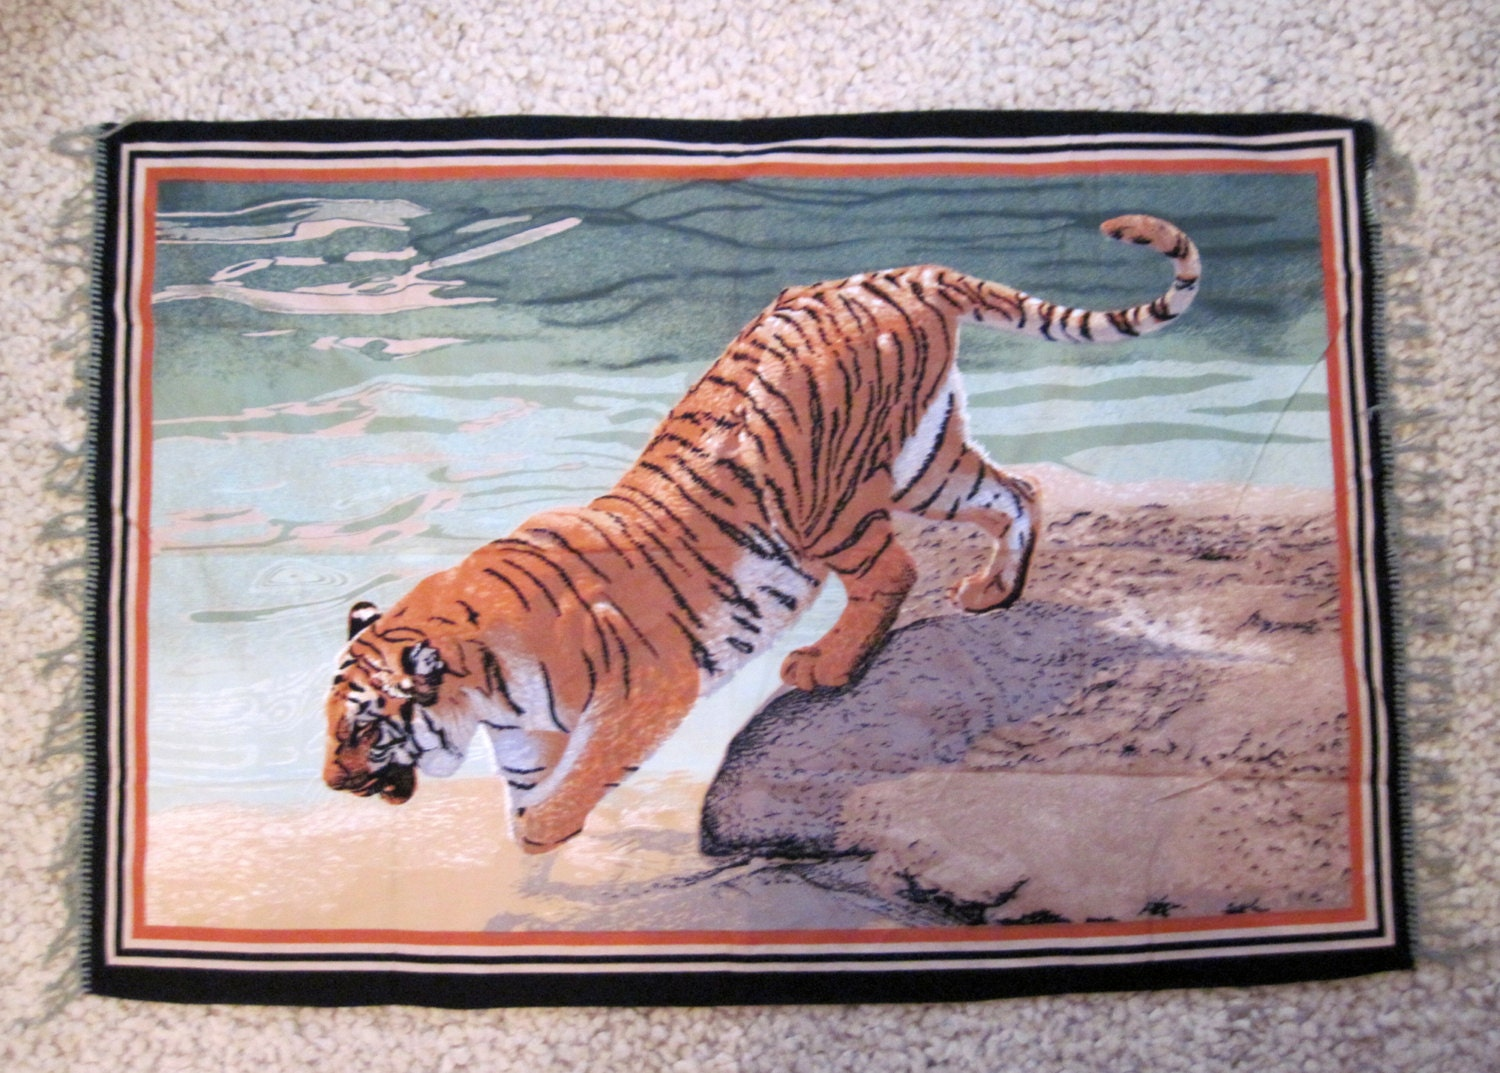 Vintage Large Size Wall Hanging Rug Tiger Tapestry Picture